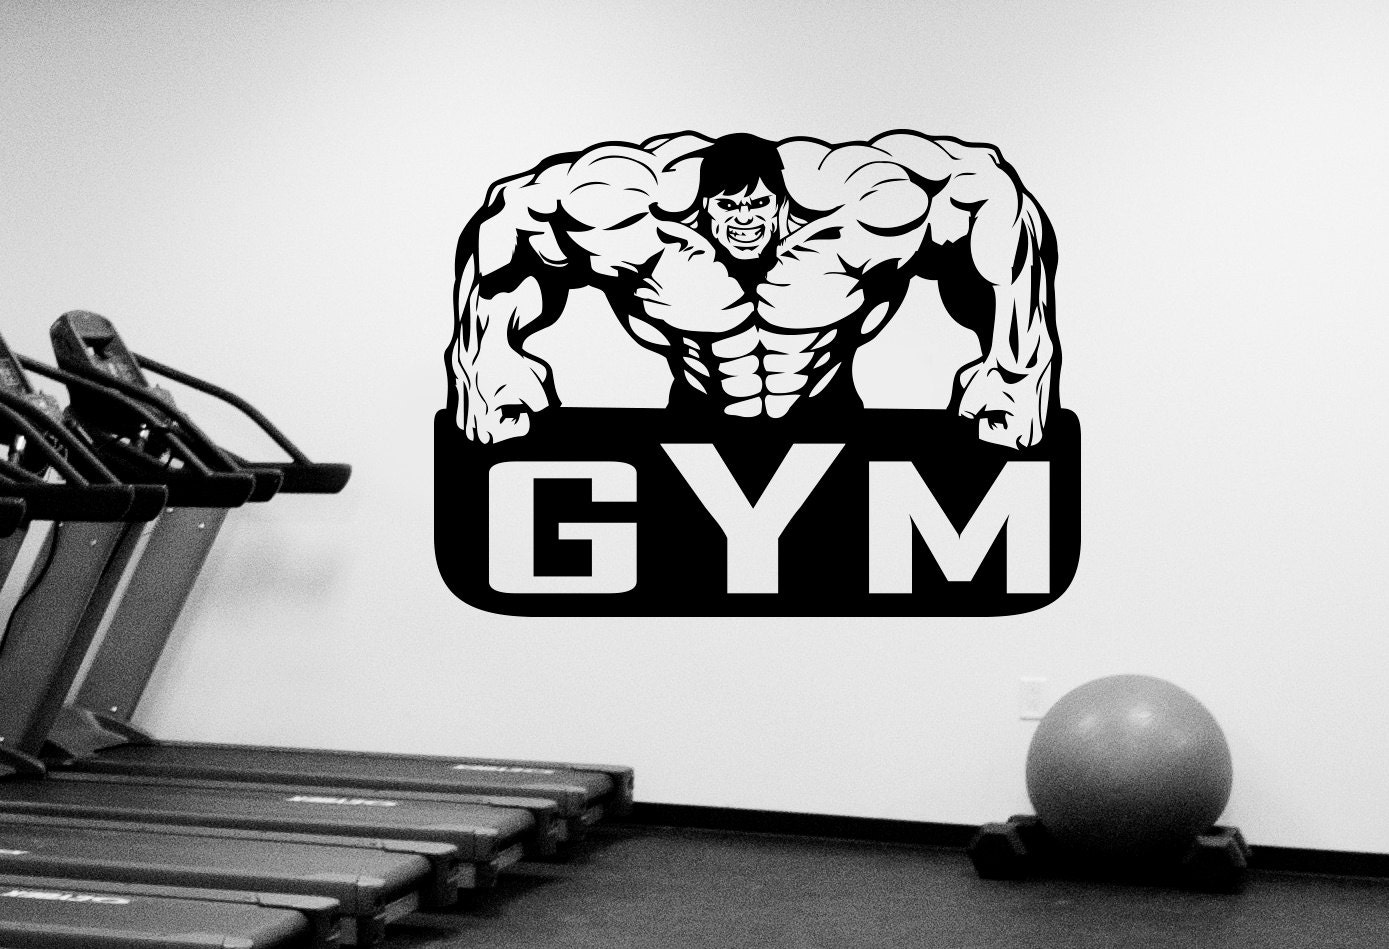 Gym emblem wall sticker vinyl window decal custom sign art